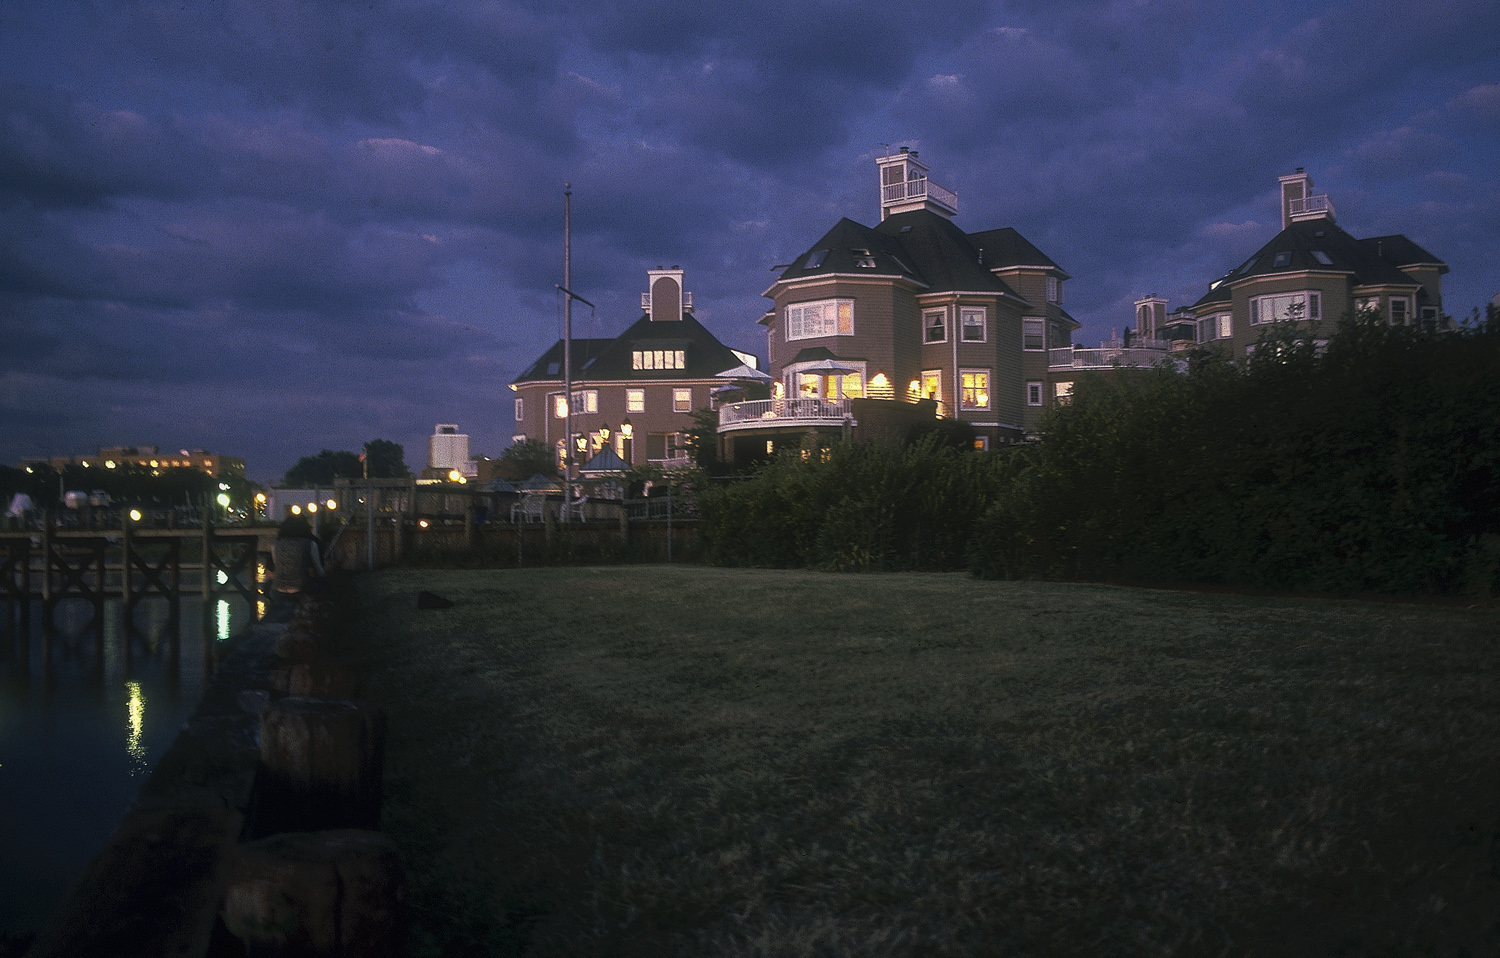 Twilight - Red Bank, New Jersey, 2000